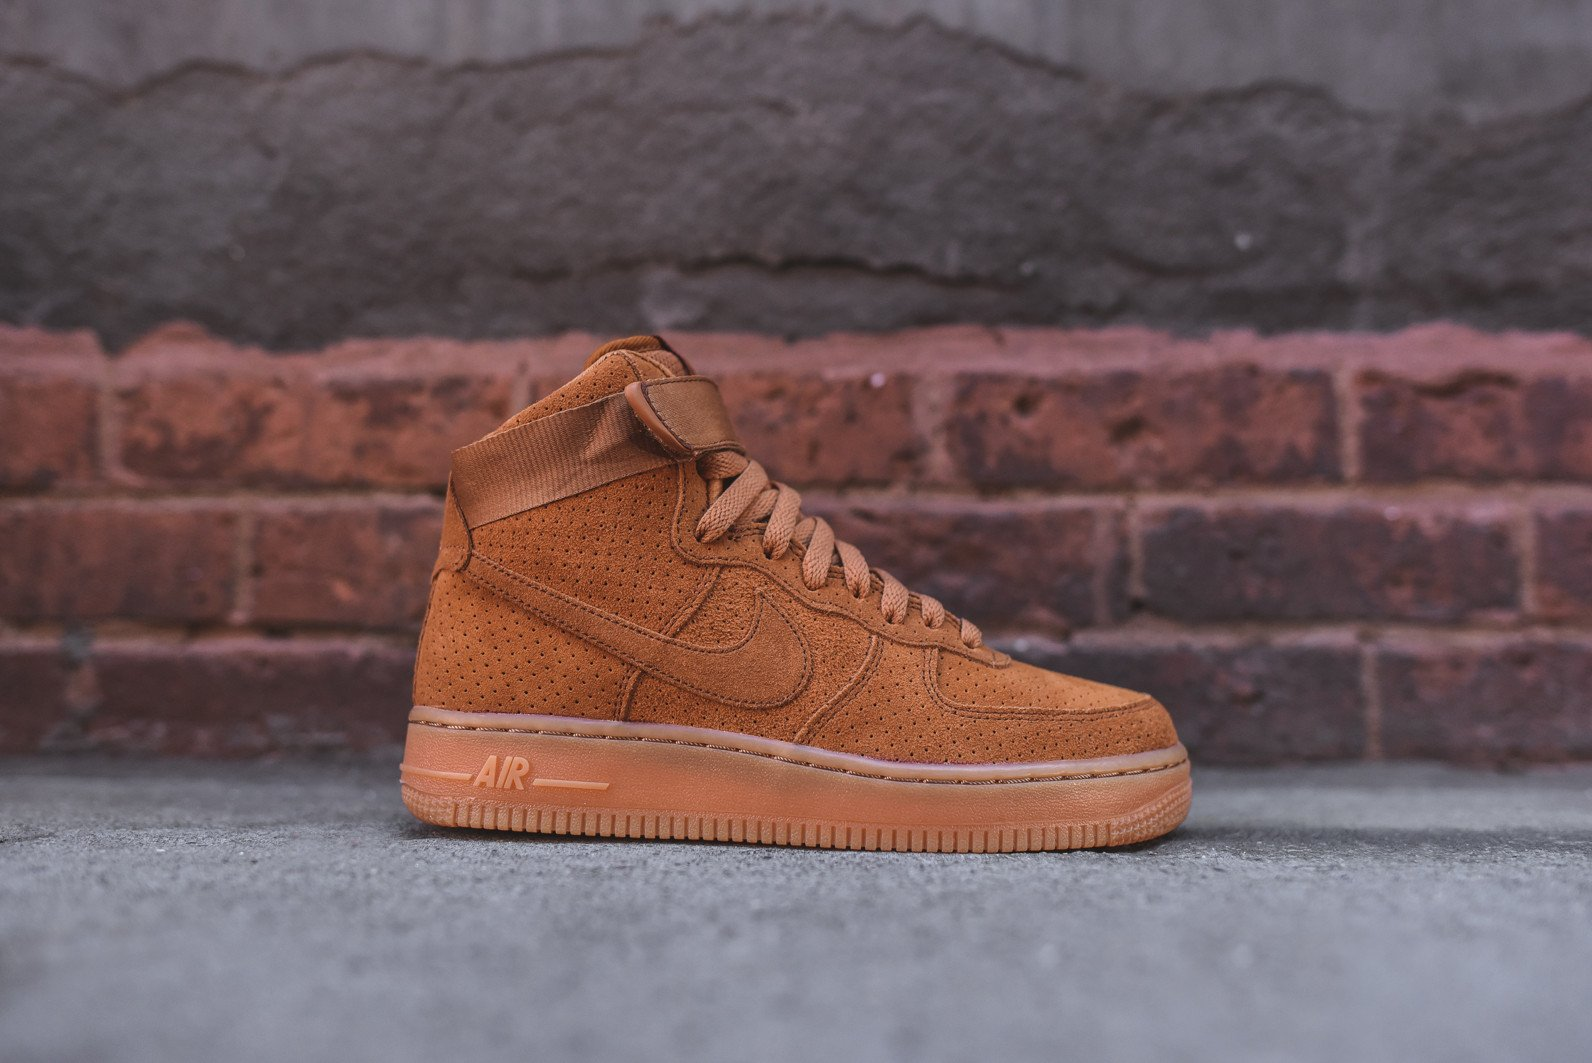 Nike Air Force 1 Perforated Suede Pack | SneakerFiles